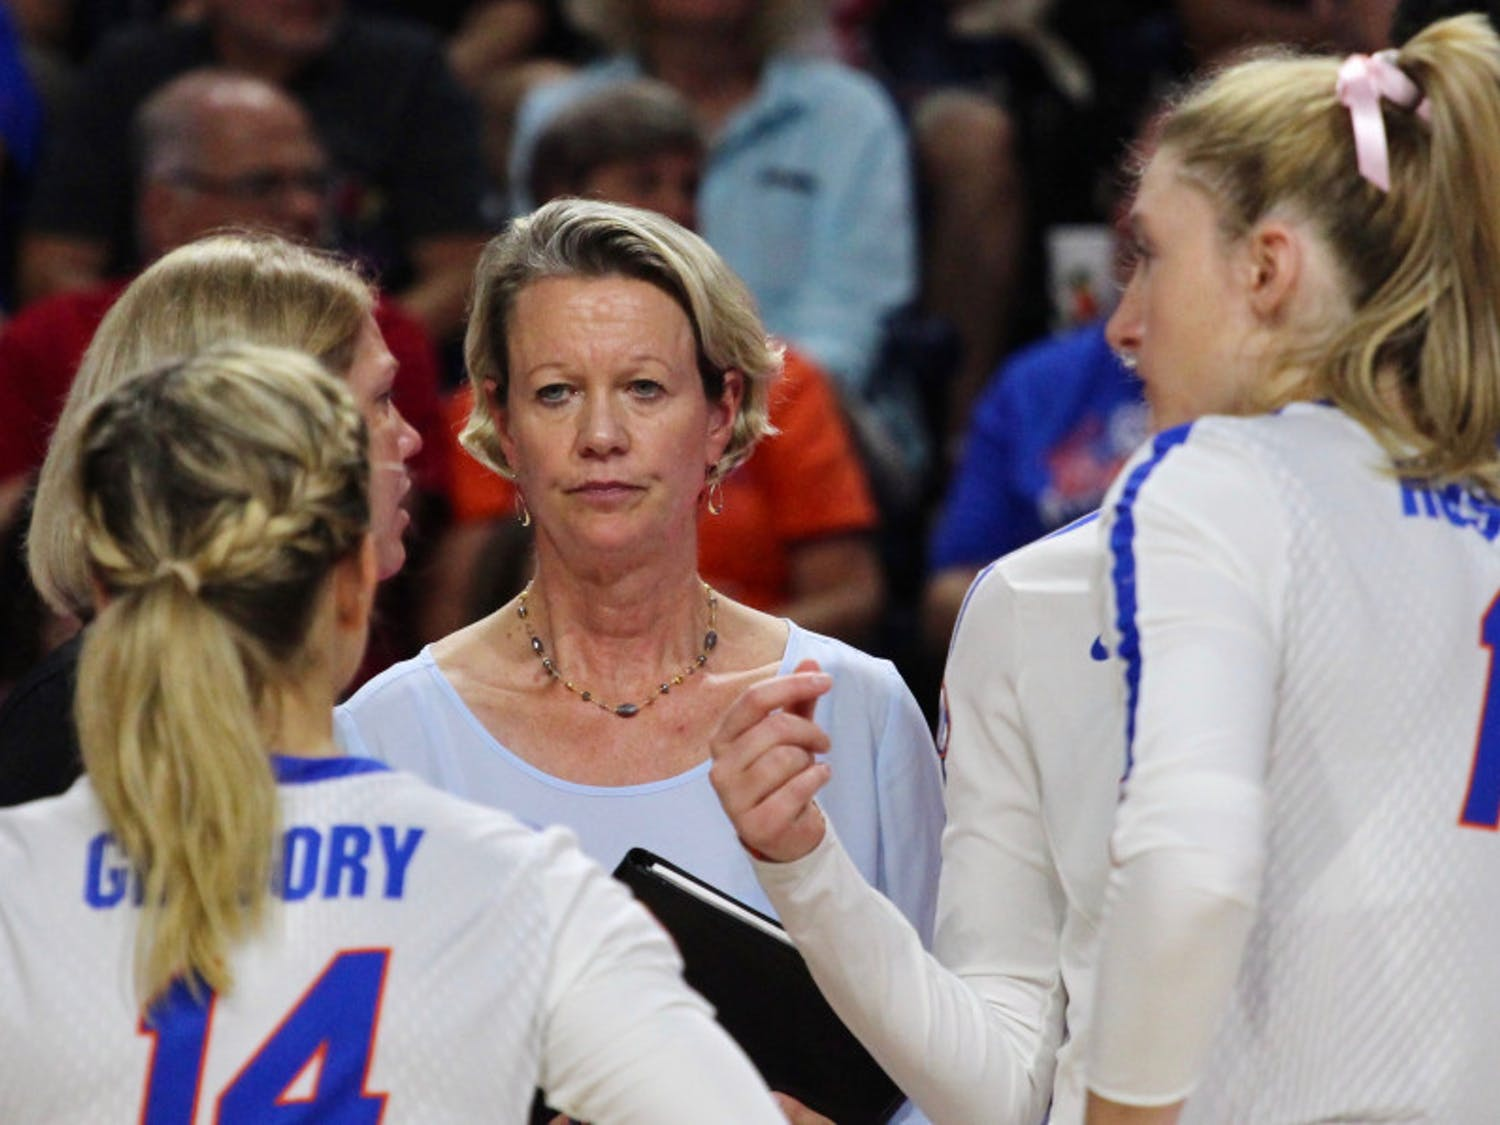 Mary Wise coached the UF volleyball team to the NCAA championship match last season. She was named AVCA National Coach of the Year for 2017 and claimed her 23rd SEC Championship with the program.